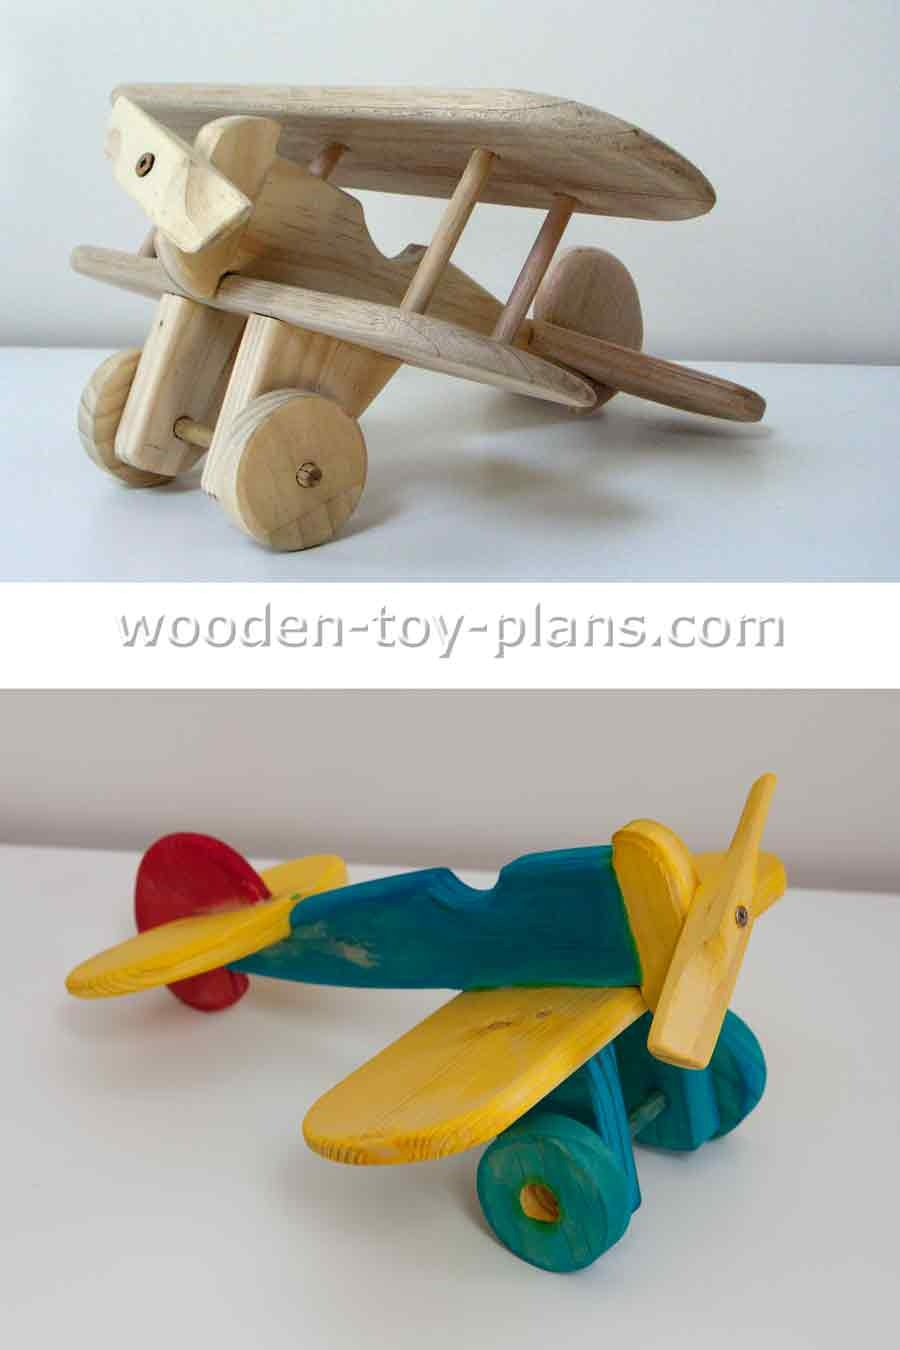 Free Wooden Toy Plans. For The Joy Of Making Toys, Print Ready Pdf - Free Wooden Toy Plans Printable